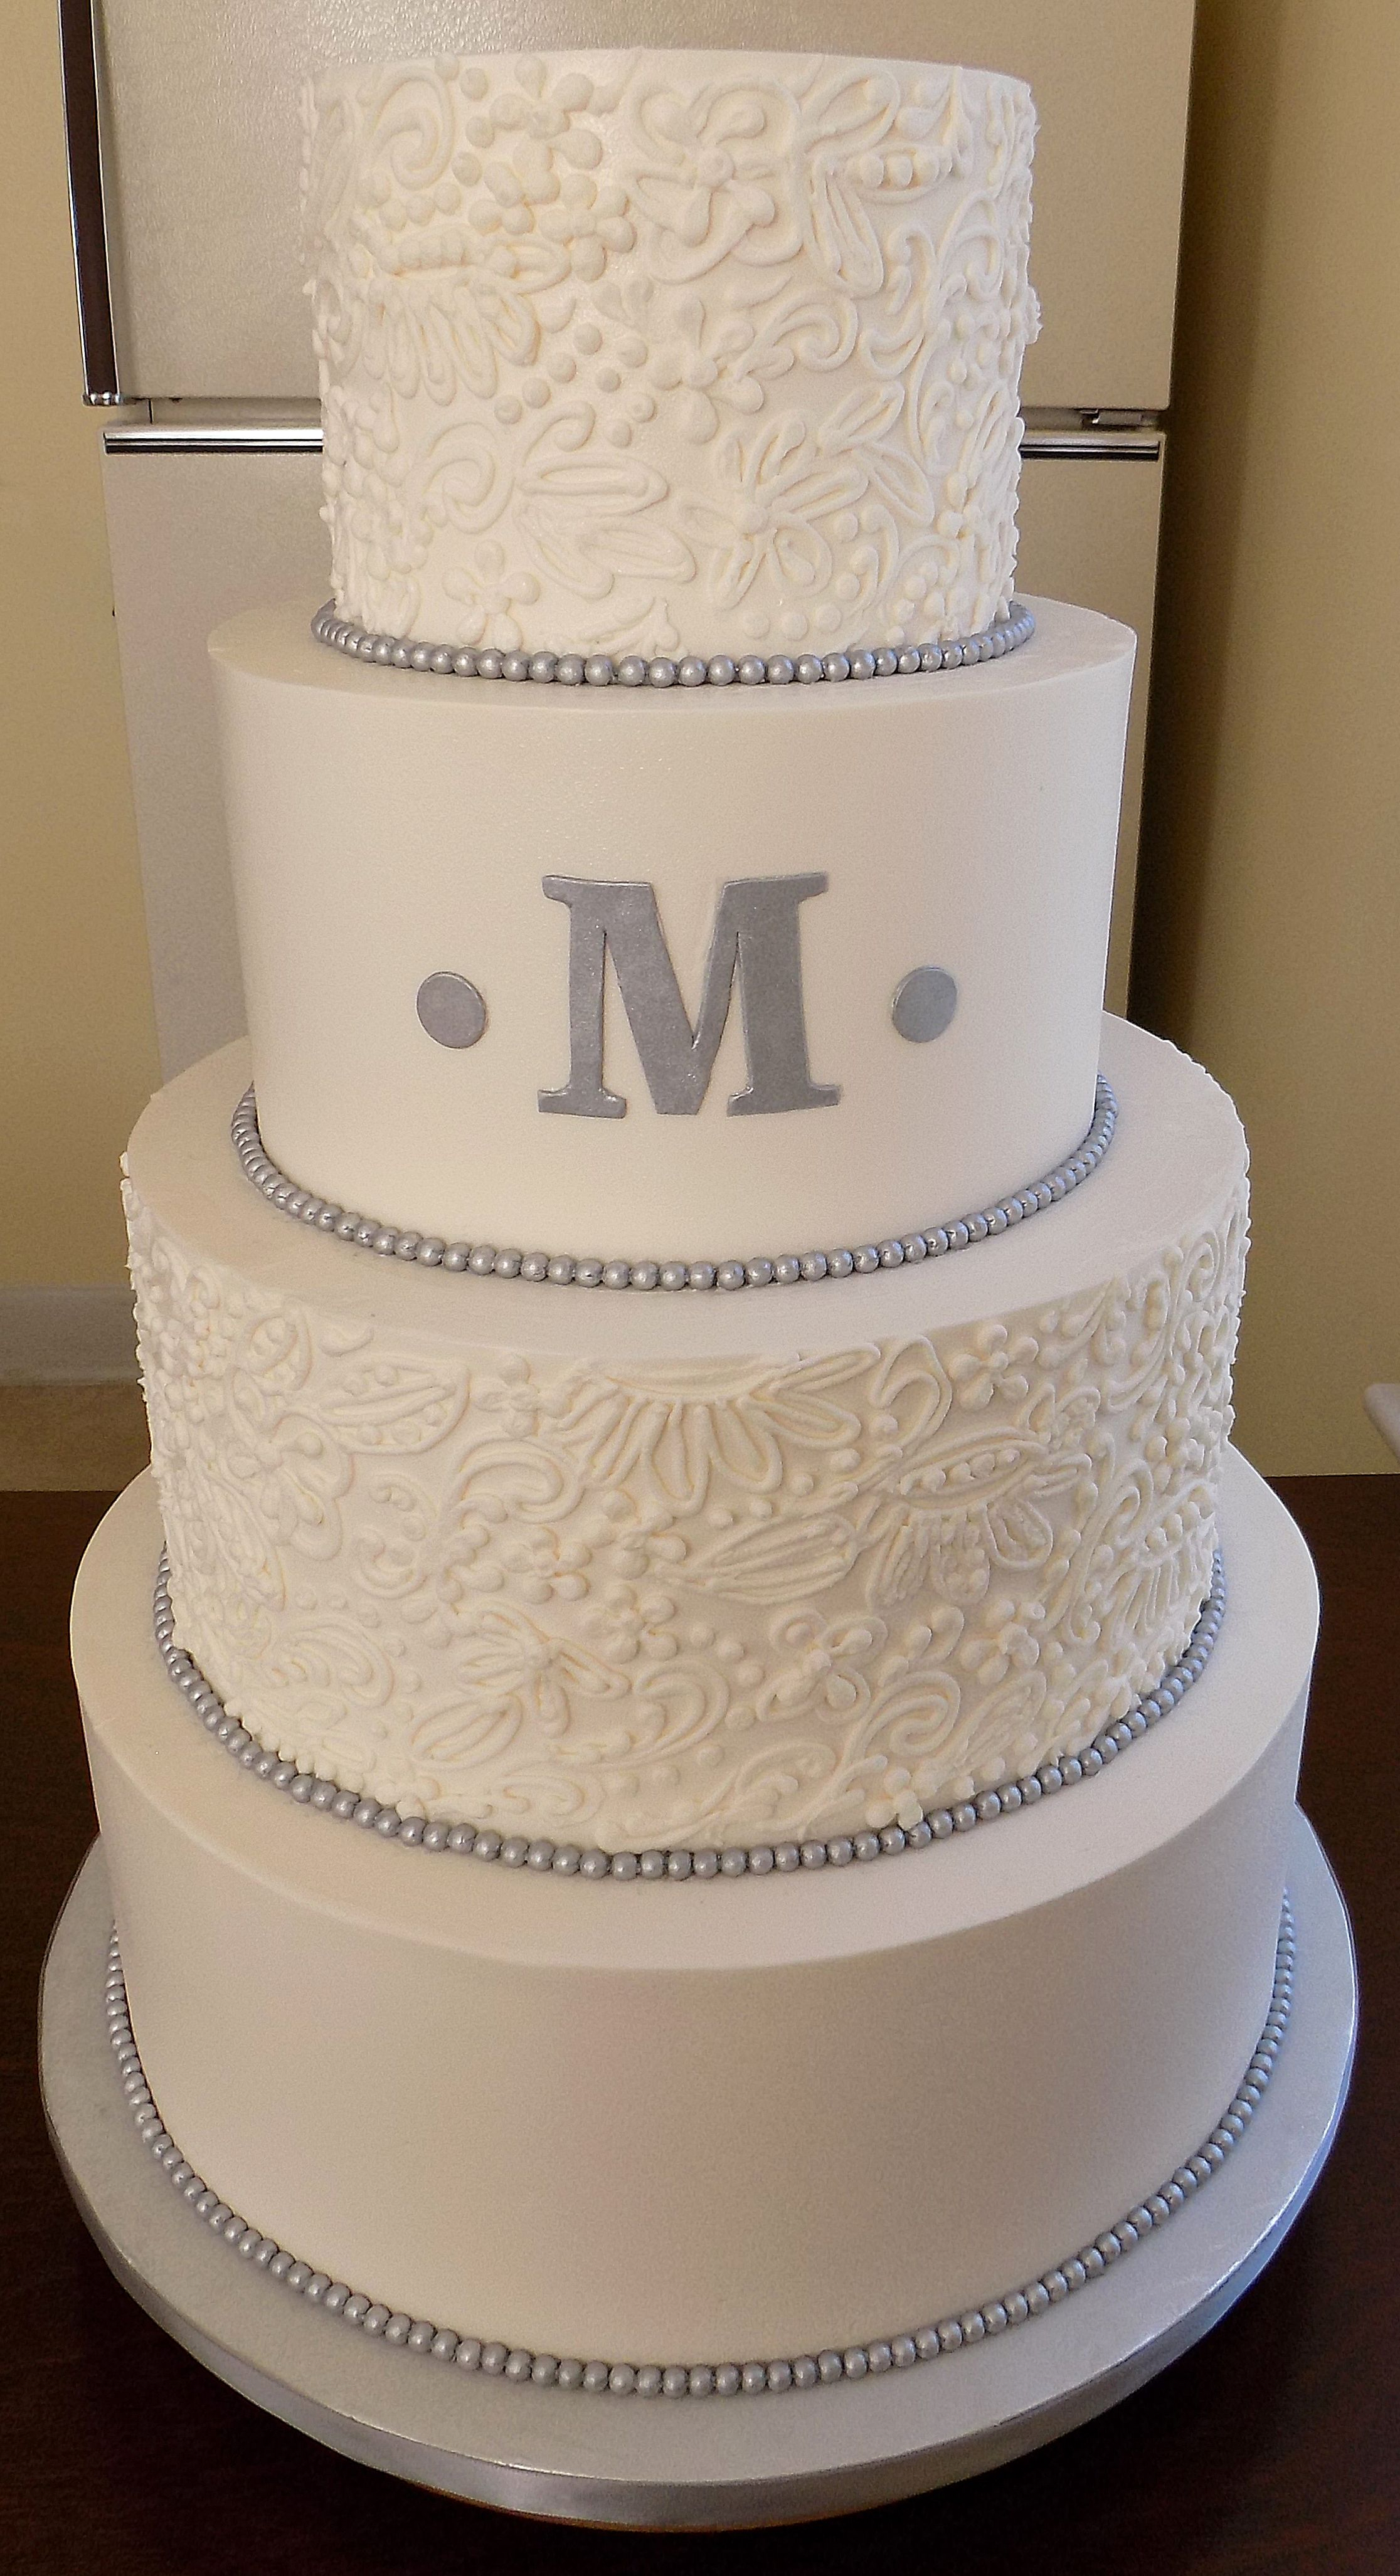 4 Tier Ercream Wedding Cake Decorated With Lace Designs Silver Fondant Pearl Borders